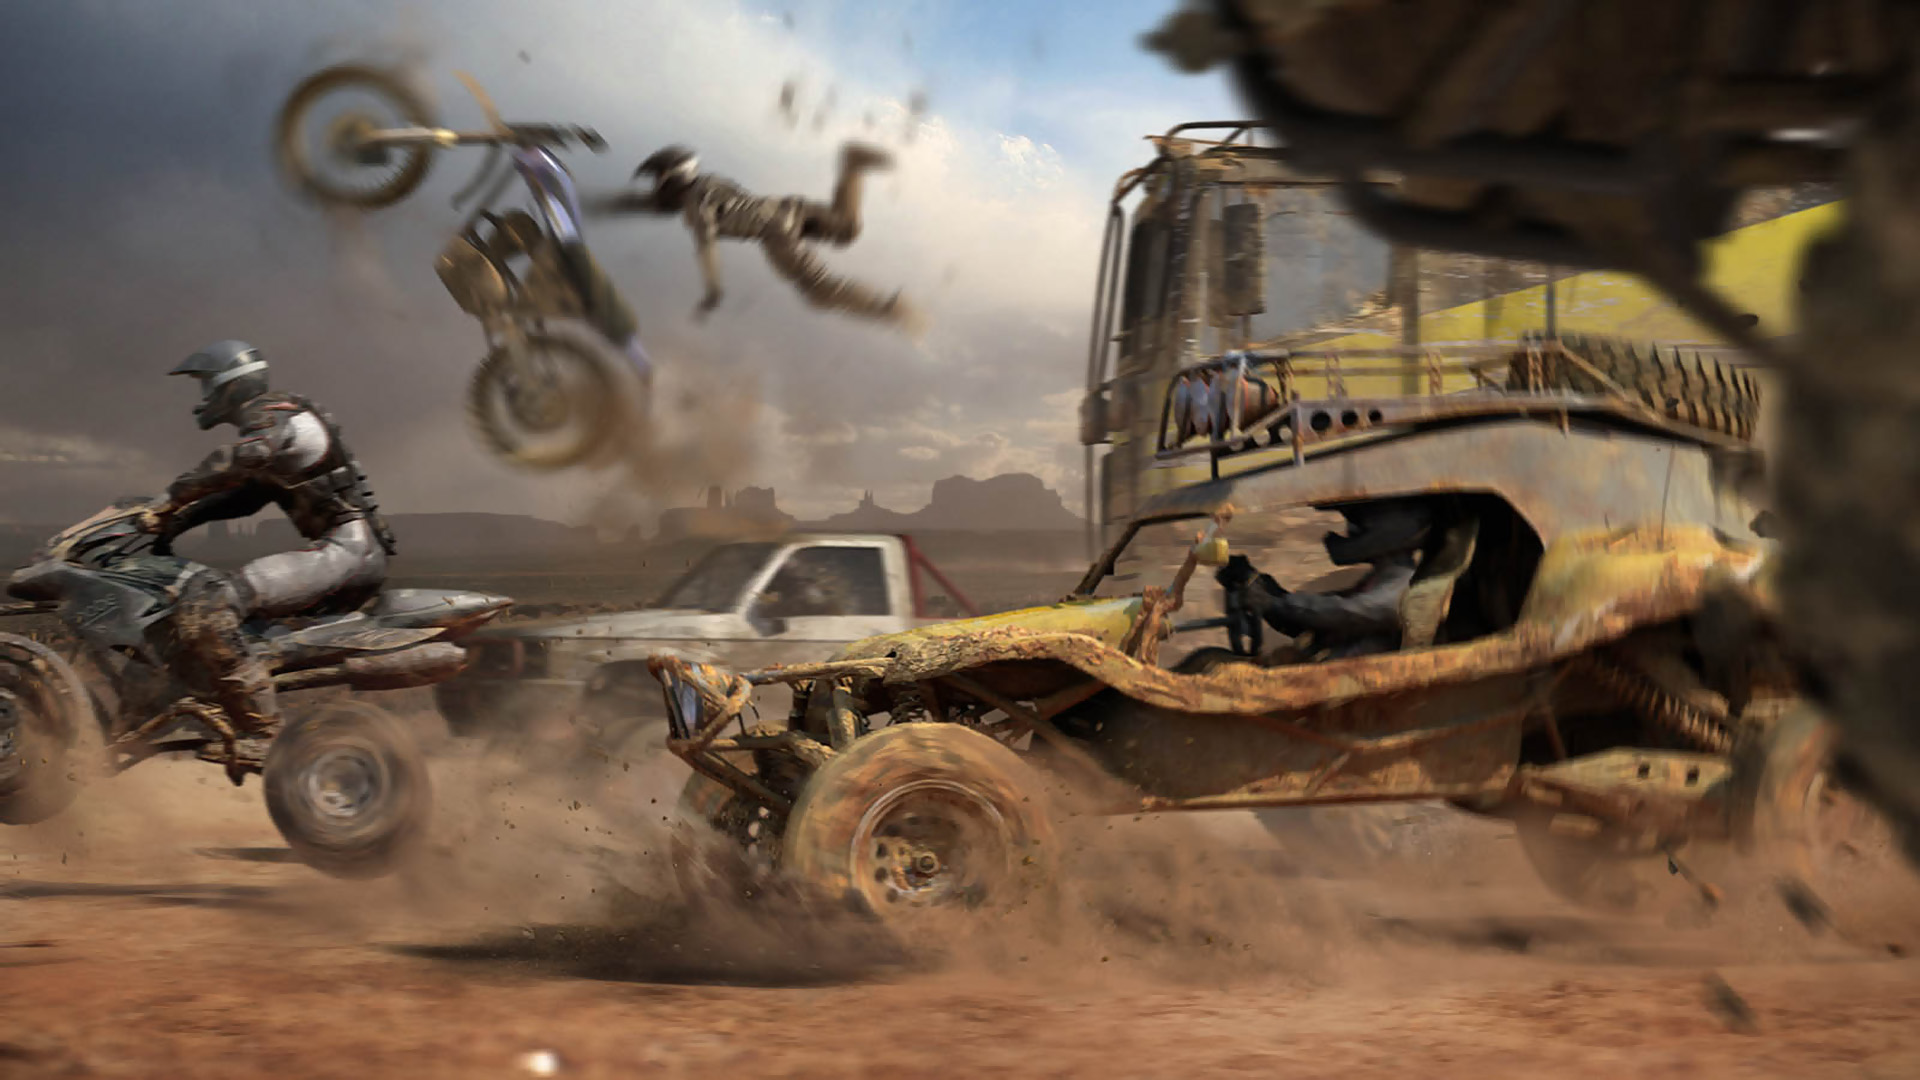 Atv Offroad Fury 3 Details Launchbox Games Database